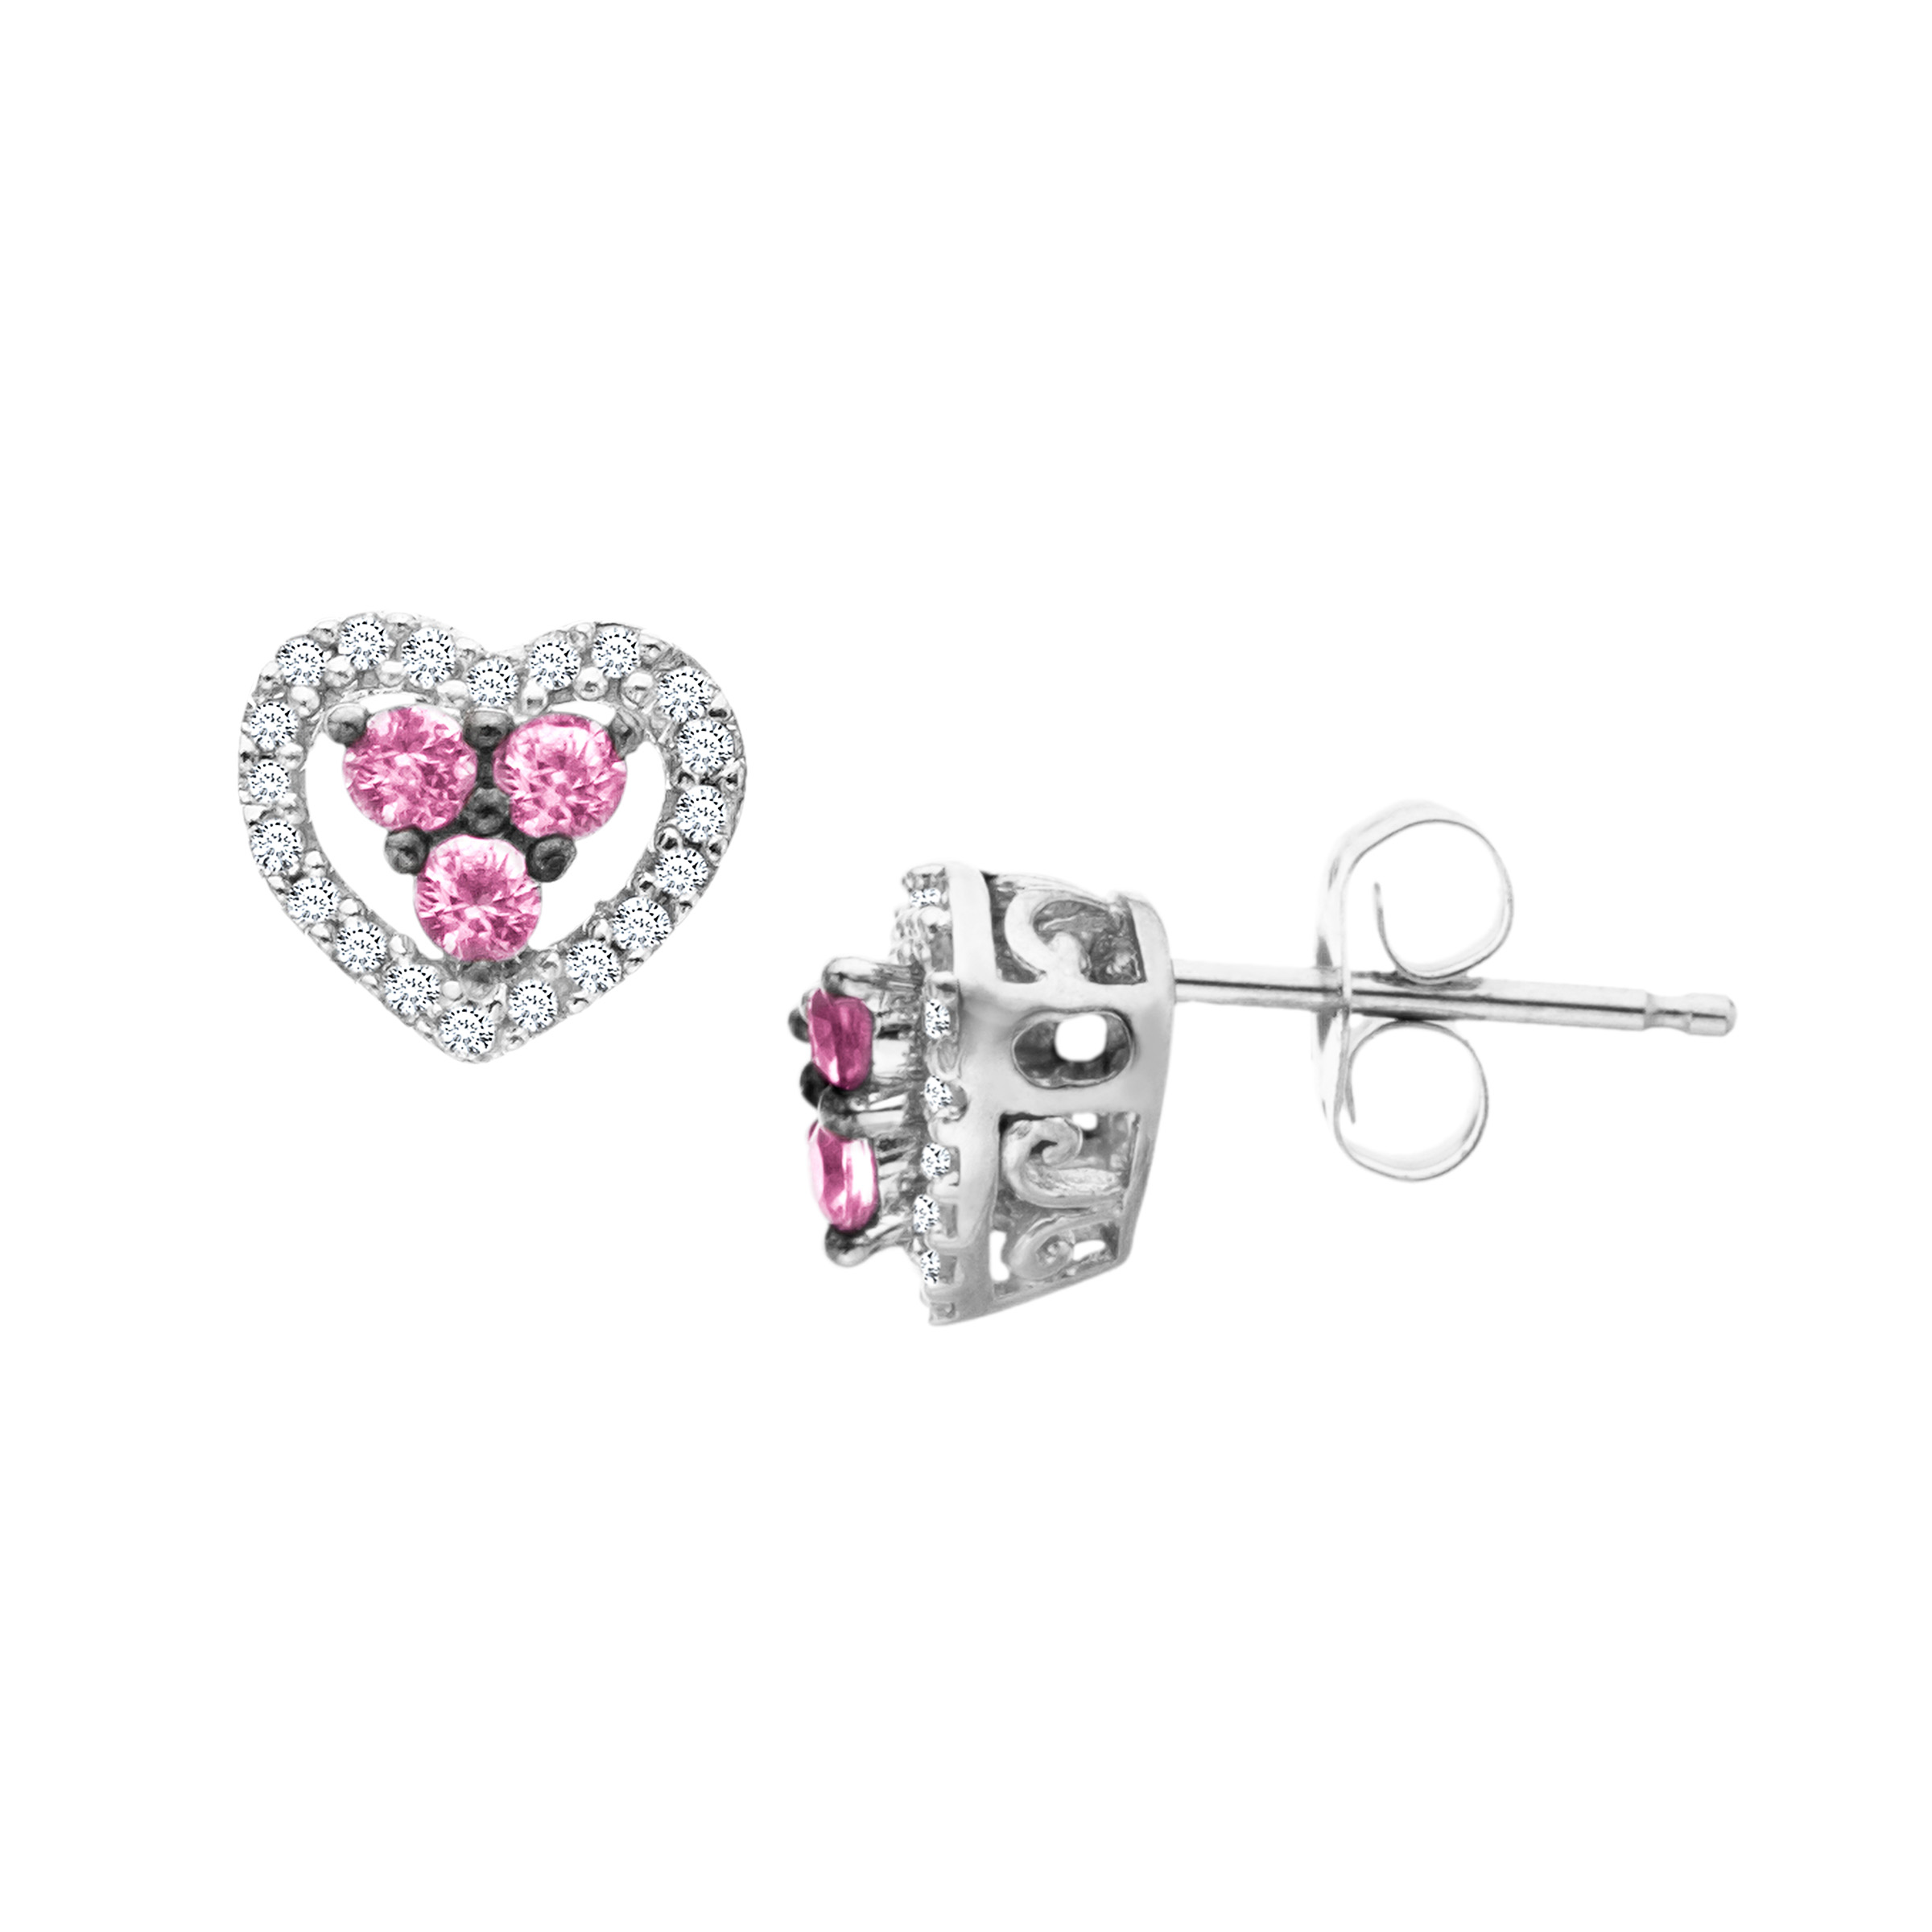 Natural Pink Sapphire and 1 10 ct Diamond Heart Stud Earrings in 14kt White Gold by Richline Group